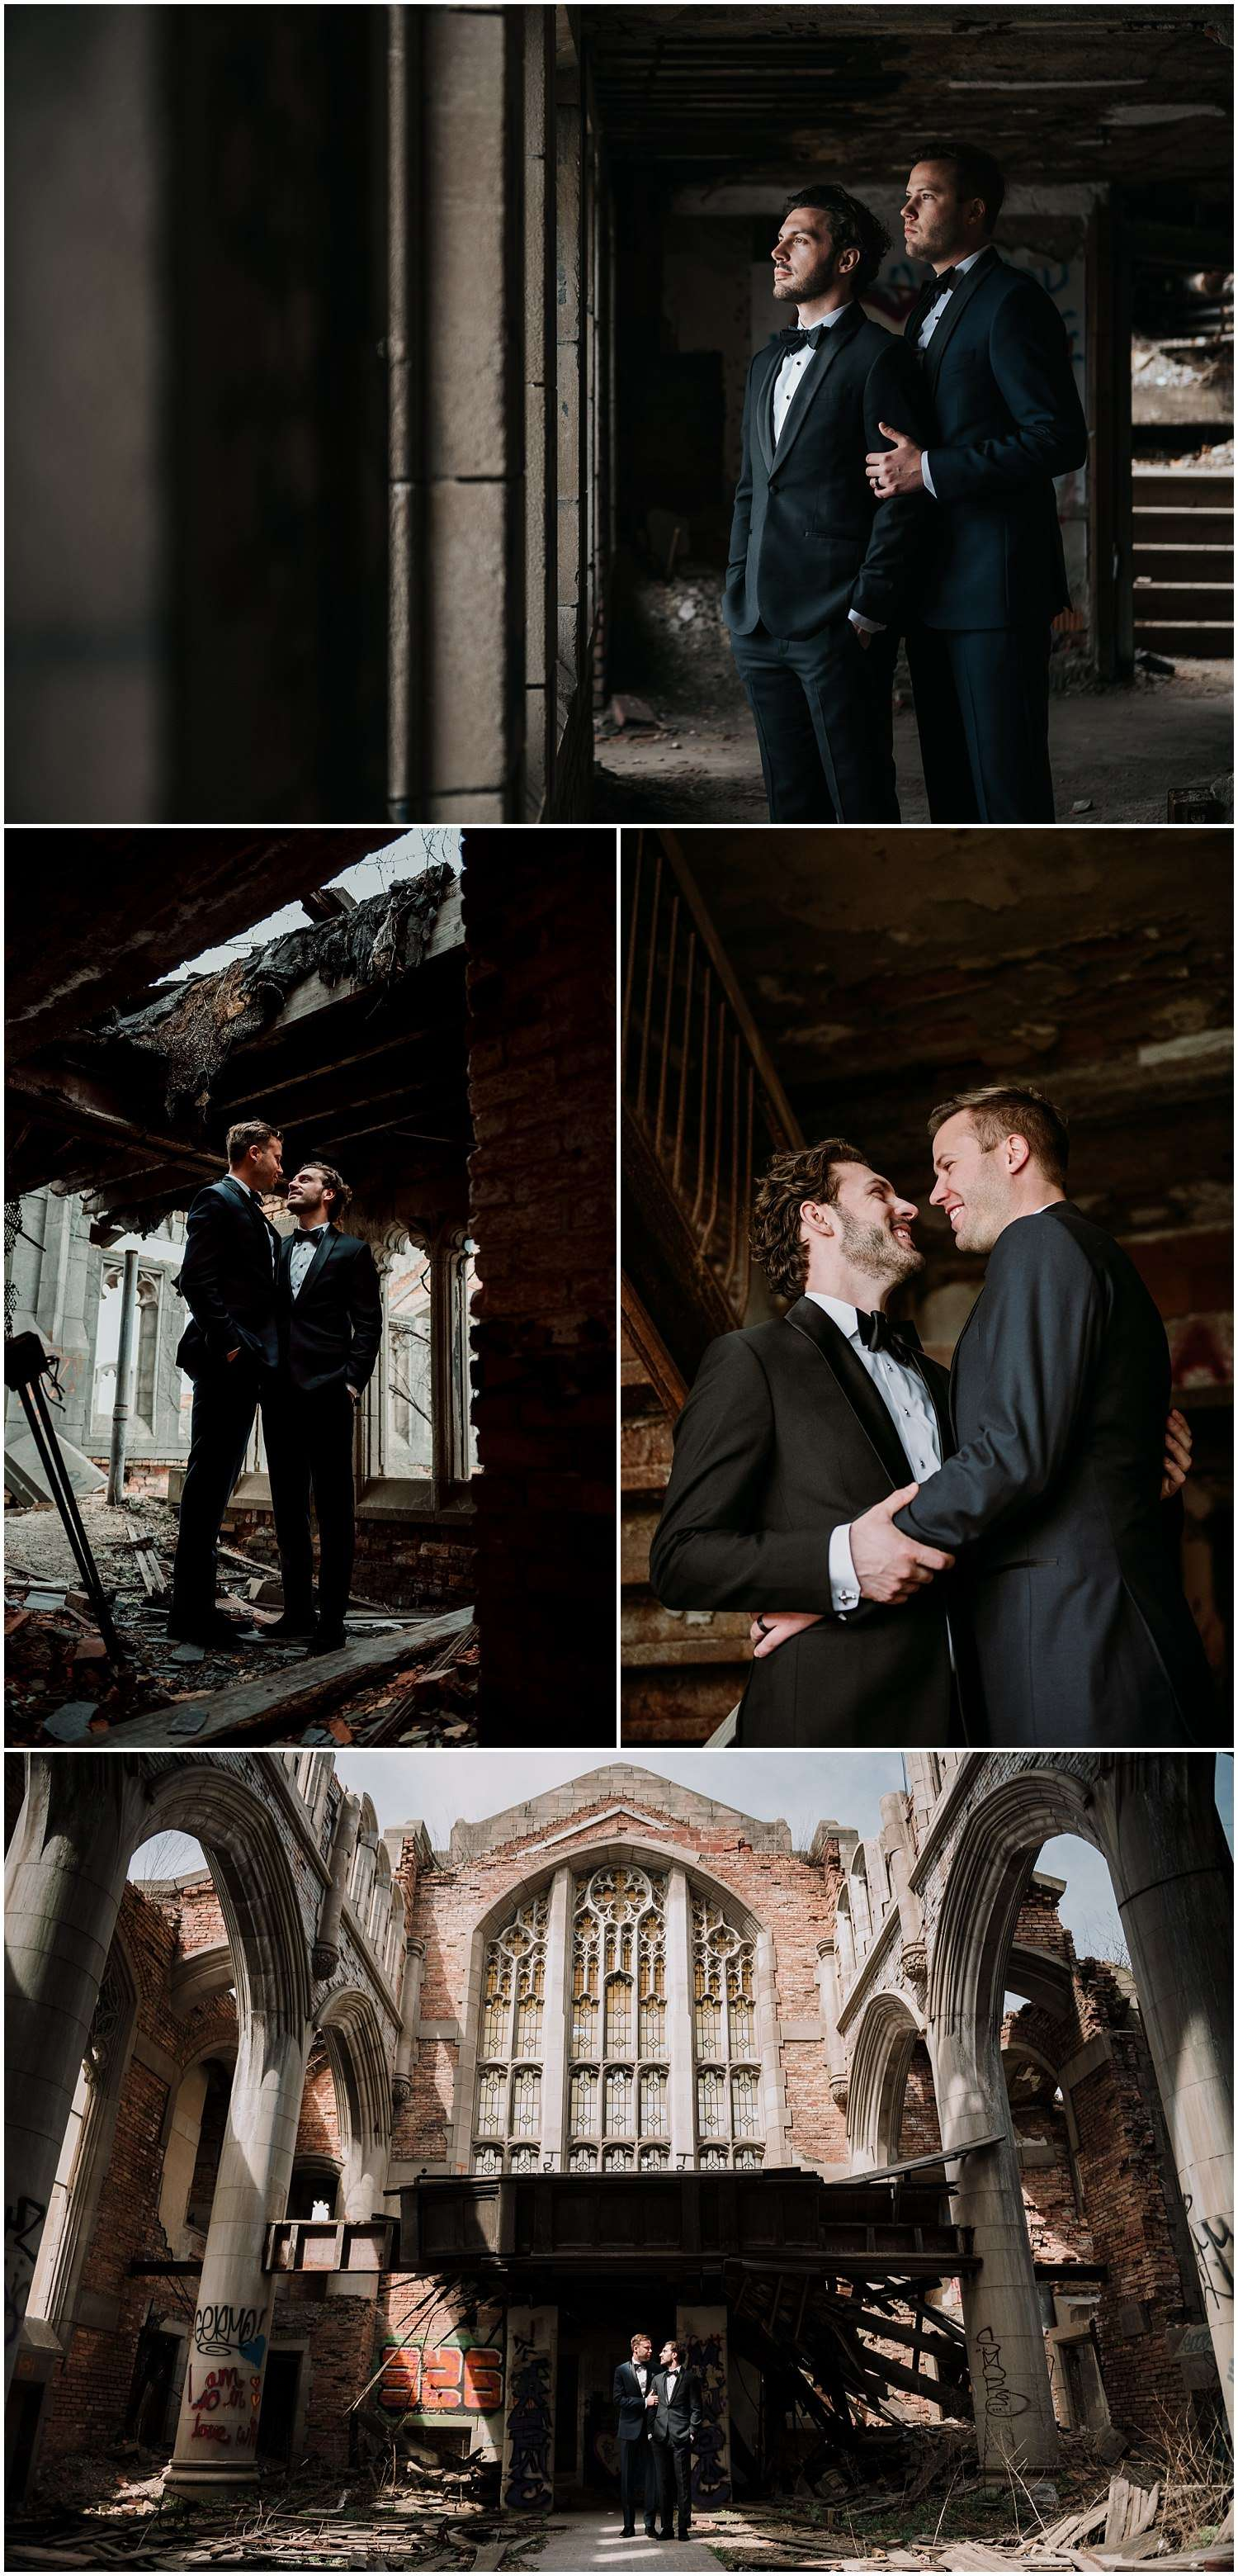 urban decay, abandoned, building, gary, indiana, chicago, illinois, couples session, gay, same sex, lgbtq, iron and honey, melissa ferrara, photographer, photography, wedding, elopement, grungy, moody, dark, emotional, passionate, dangerous, texture, engagement,